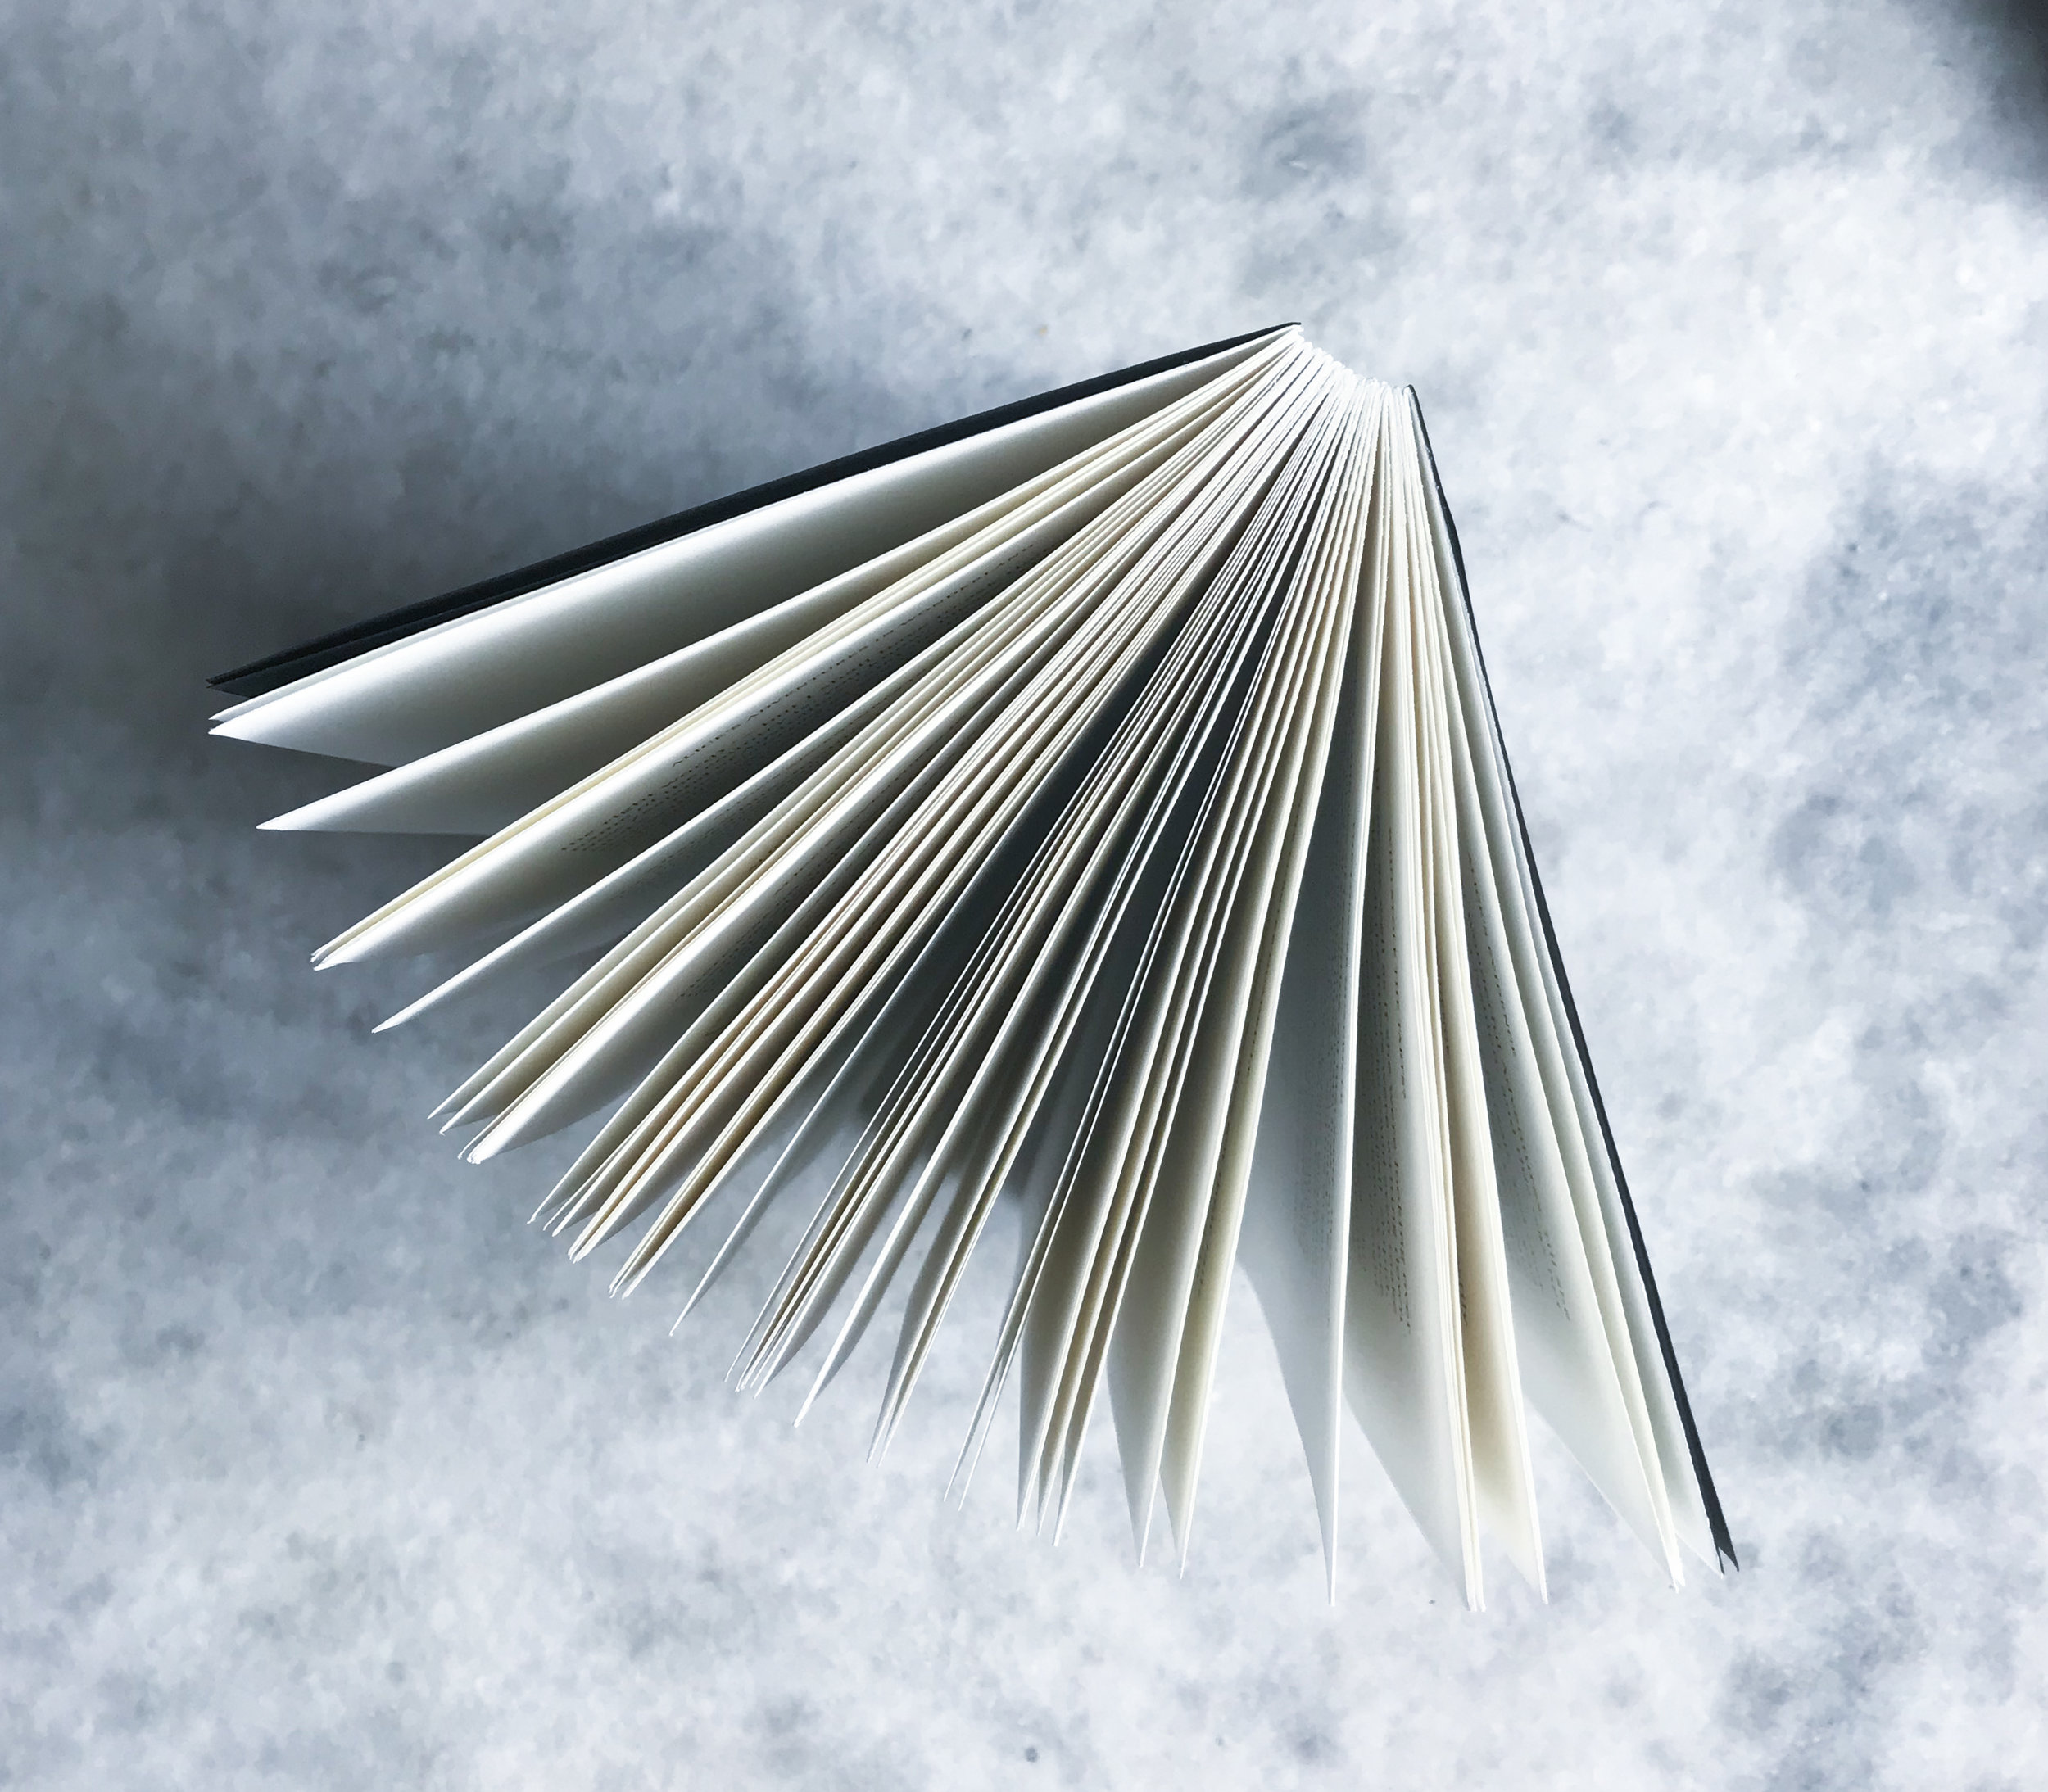 Fanned pages